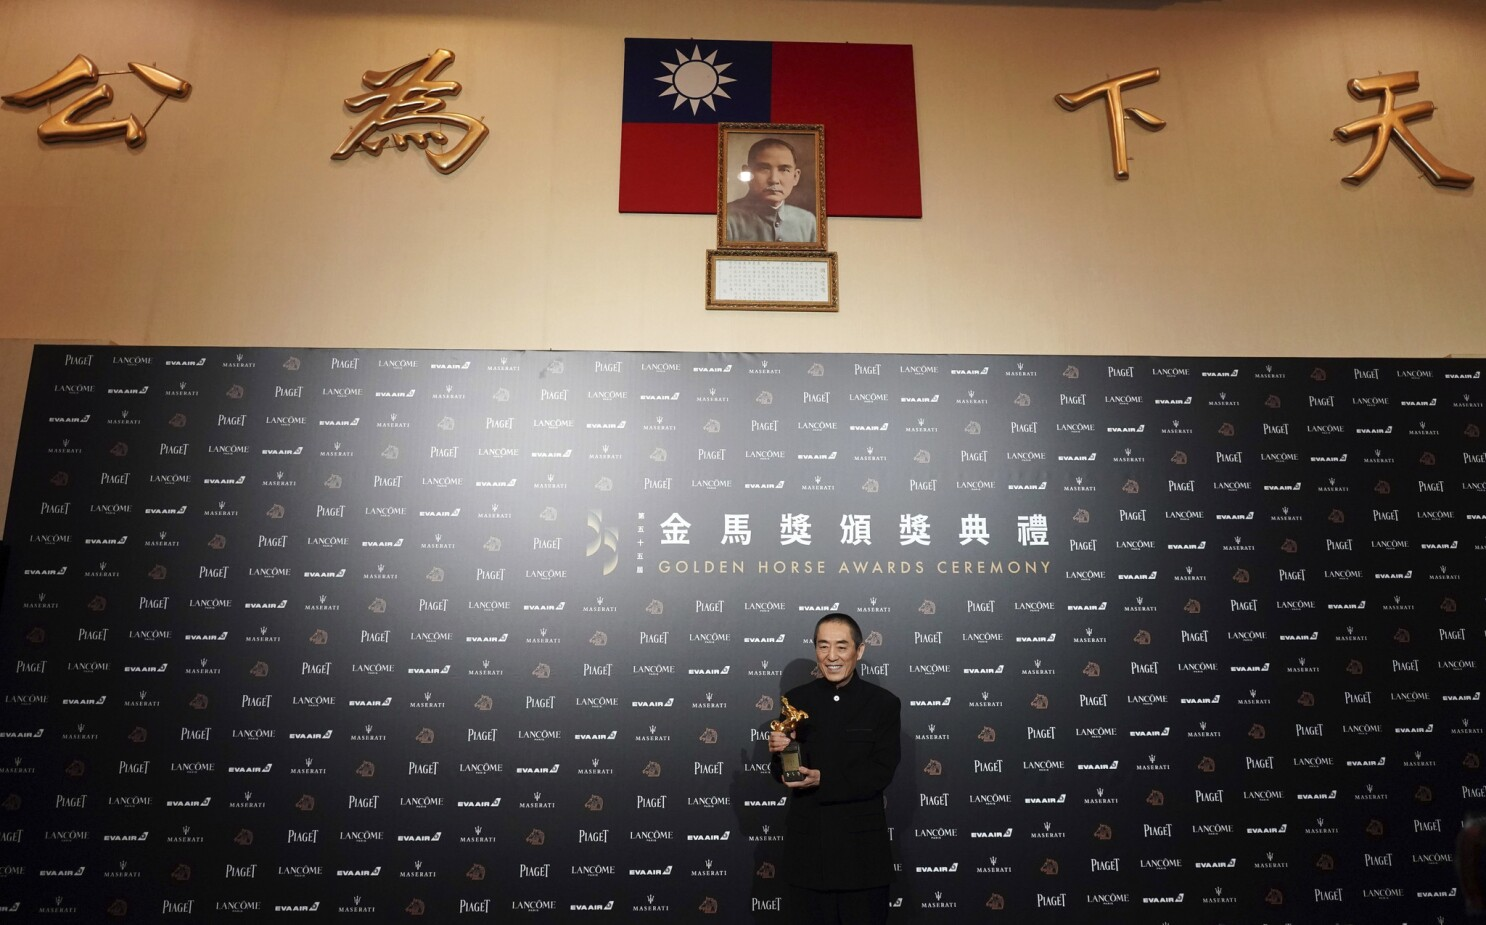 China bans movies, actors from prominent Taiwan film awards - The